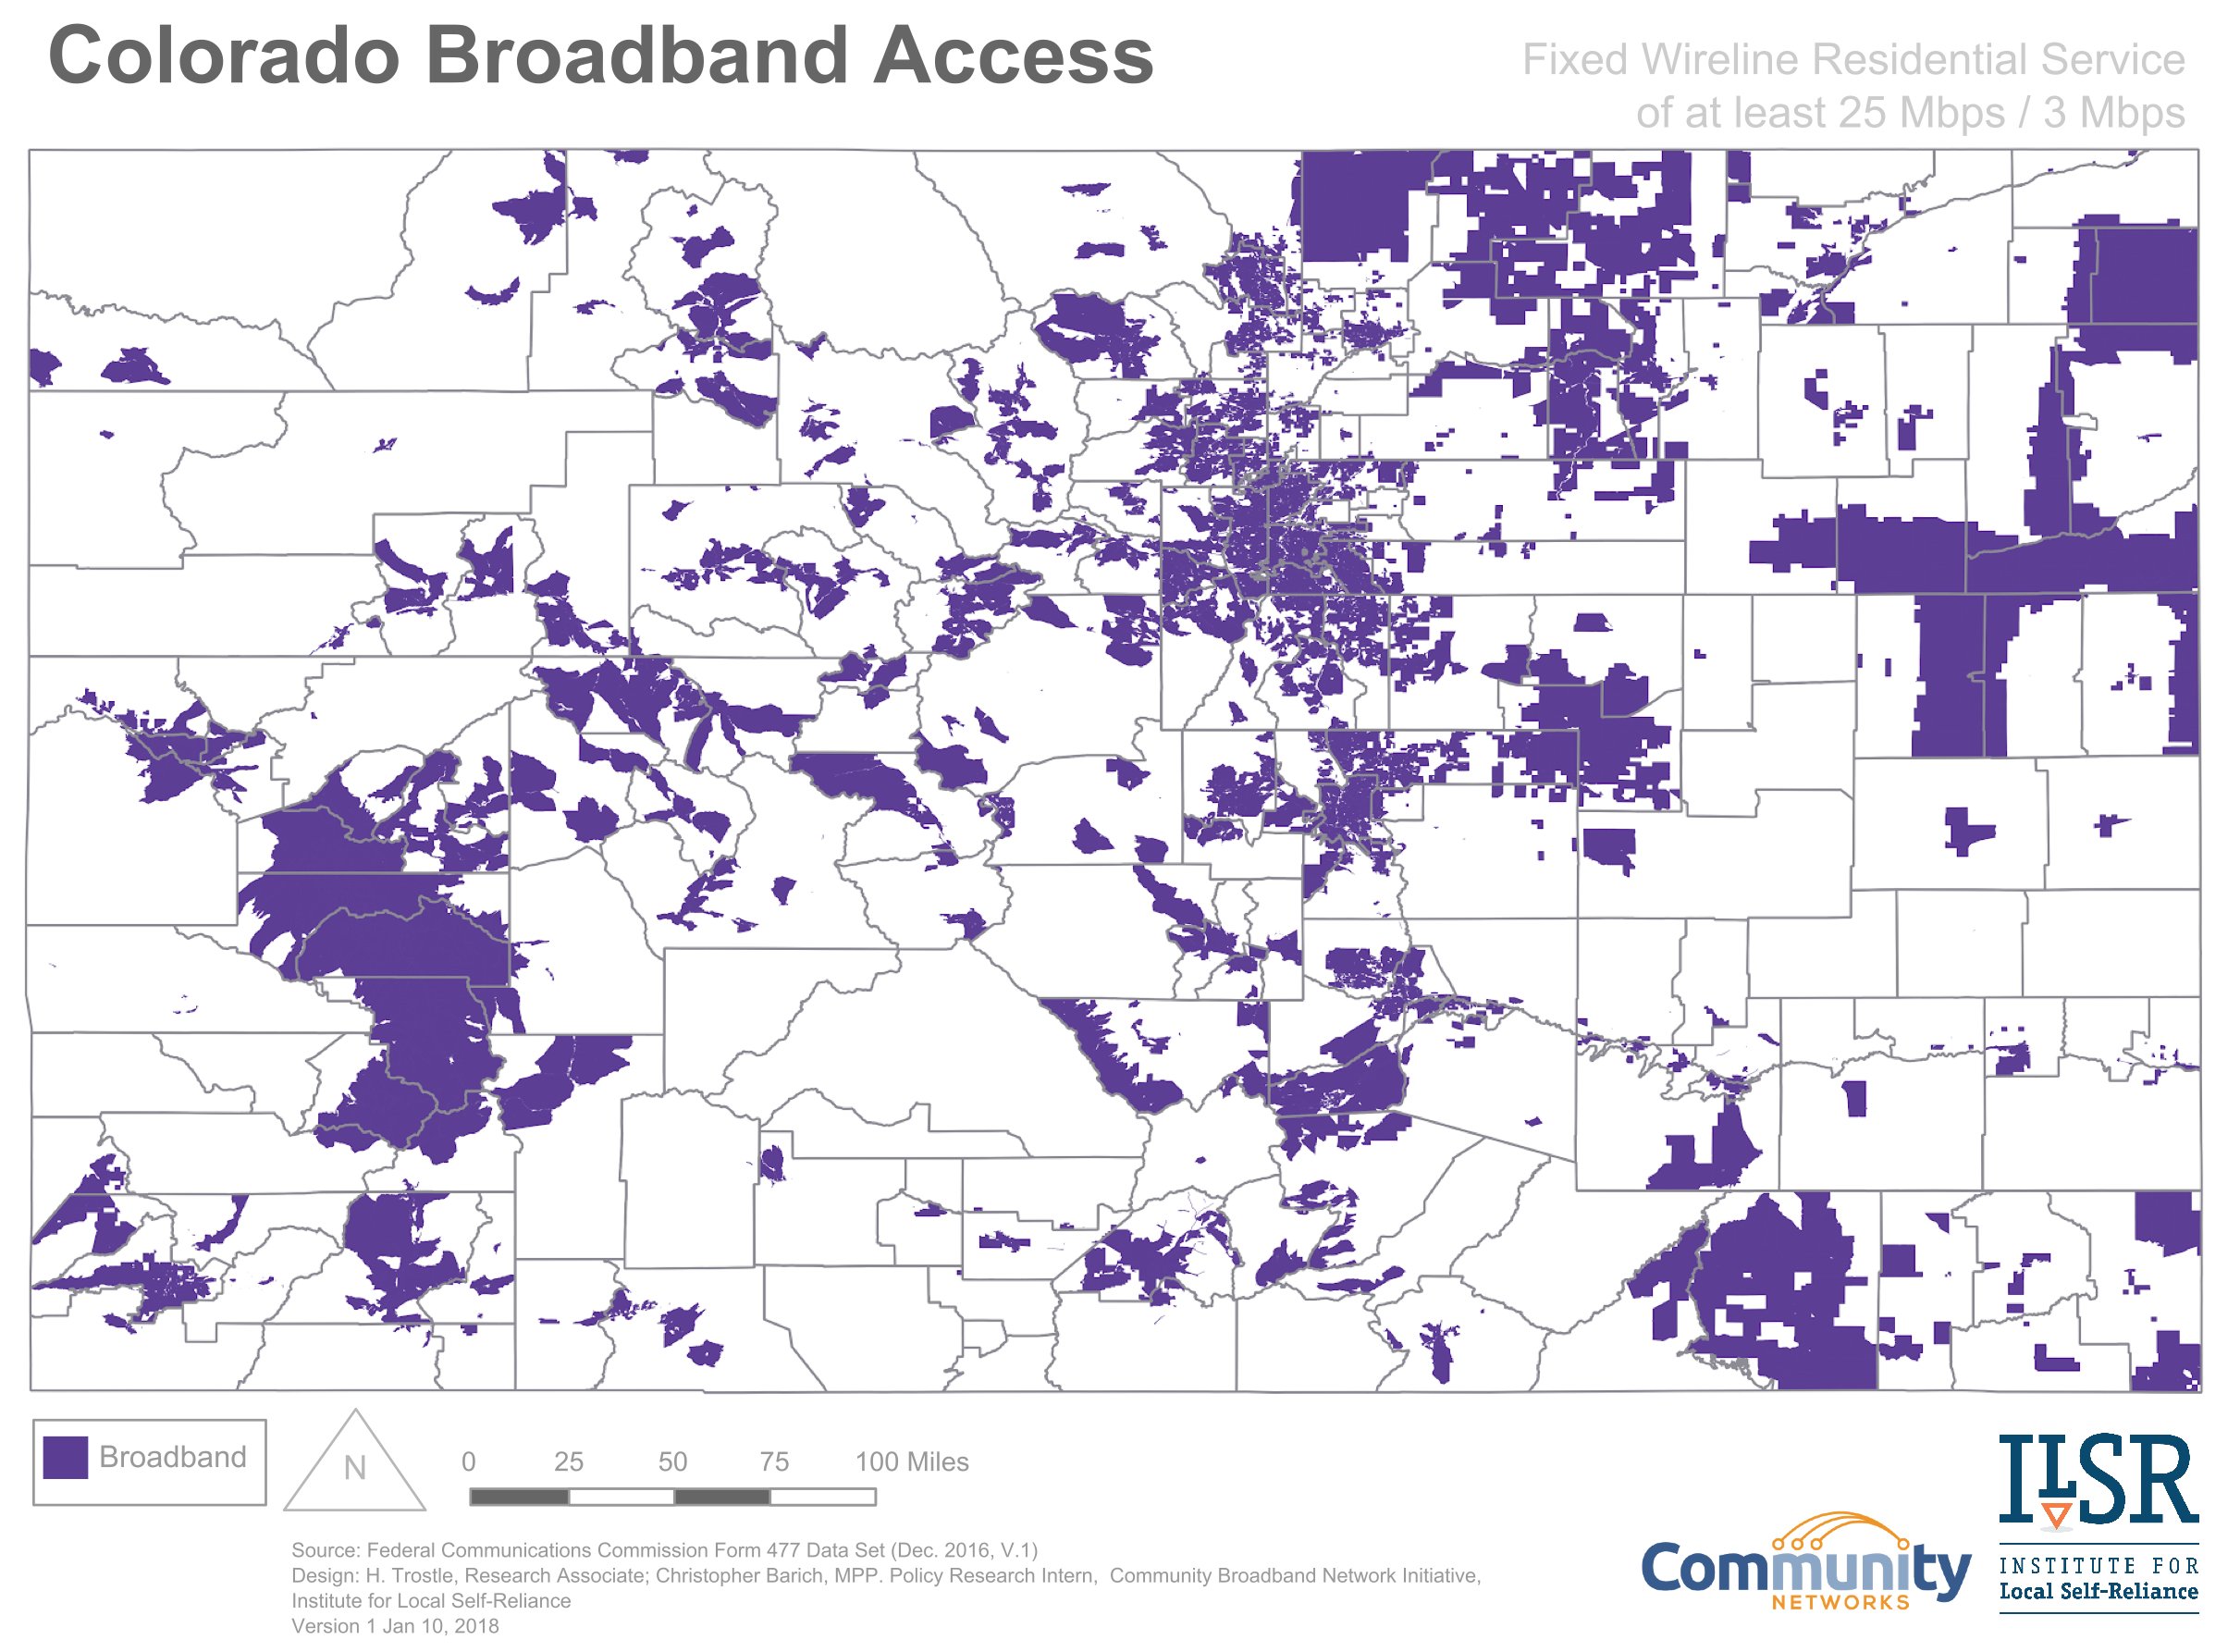 Colorado broadband service